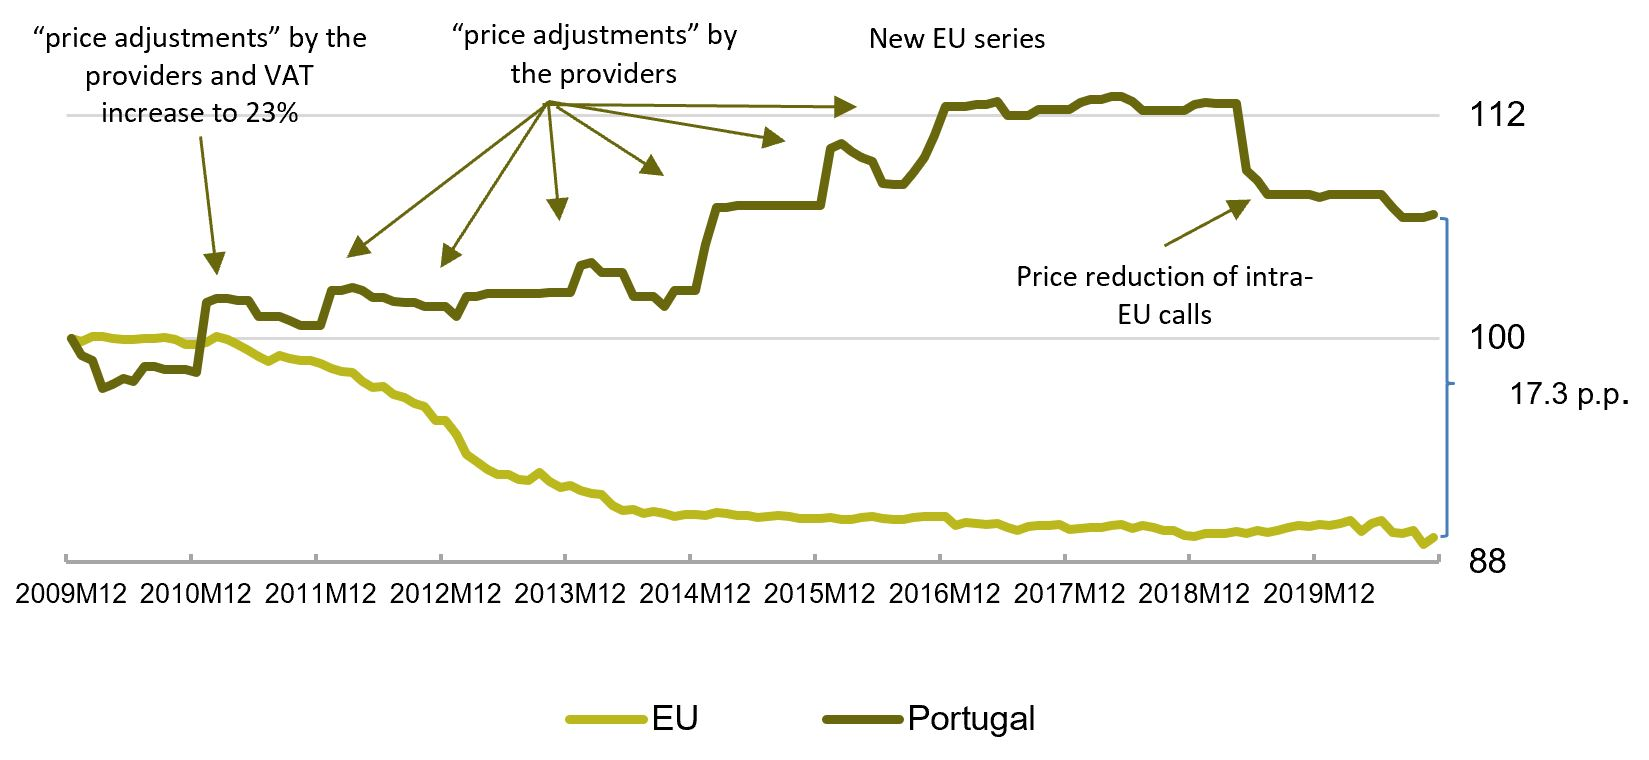 The differences between the evolution of the telecommunications prices in Portugal and in the EU was primarily due to the ''price adjustments'' implemented by the providers during various years, particularly in the first months of each year.